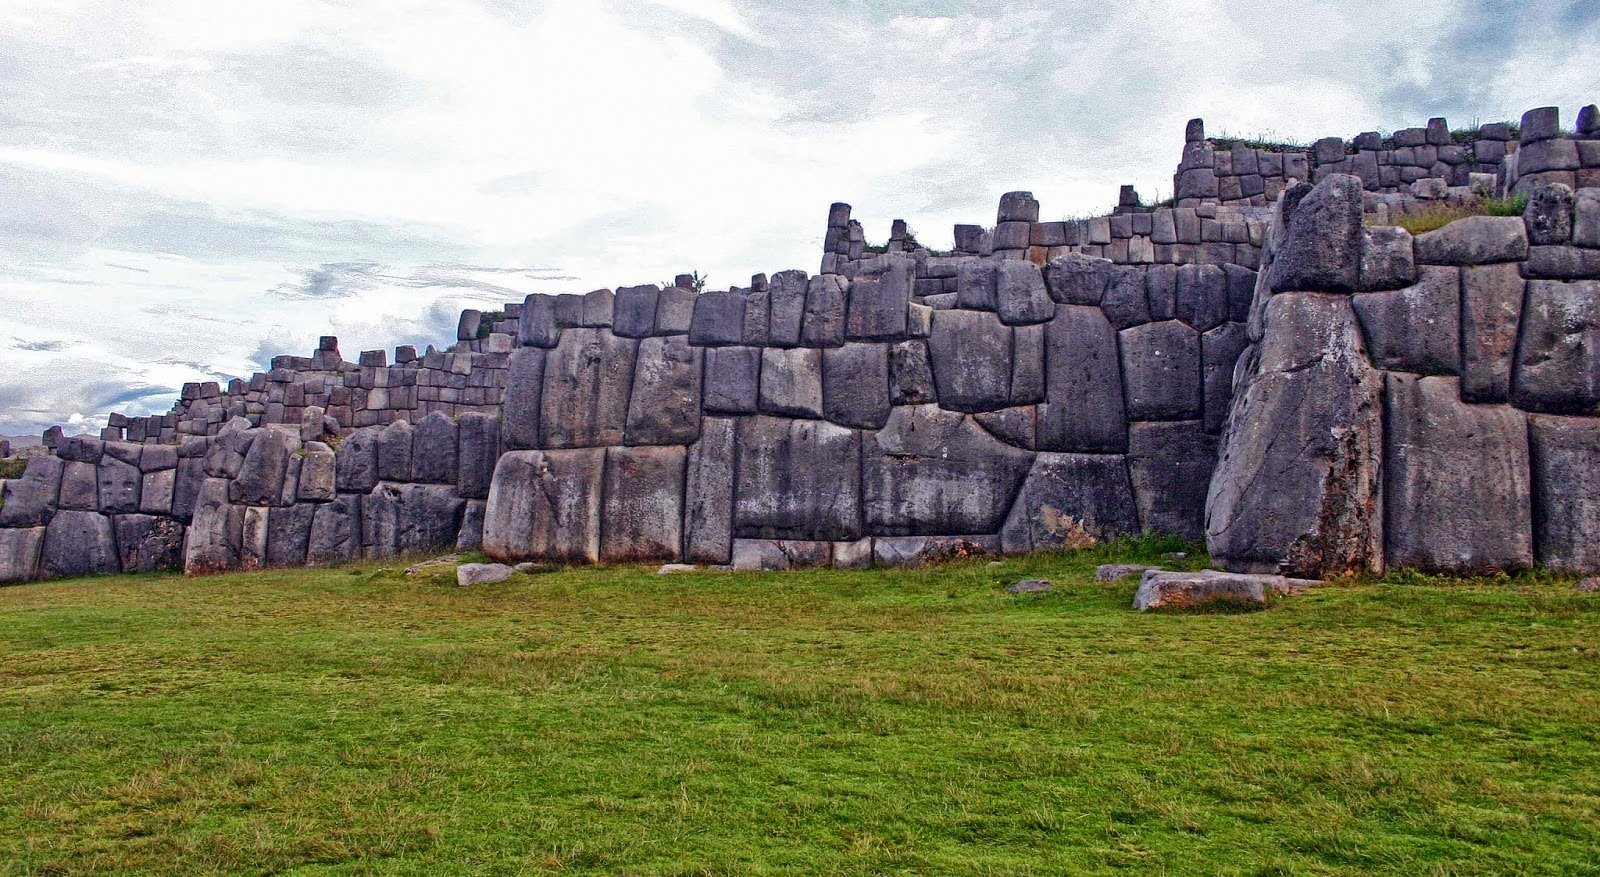 High Technology in Stone Age Peru